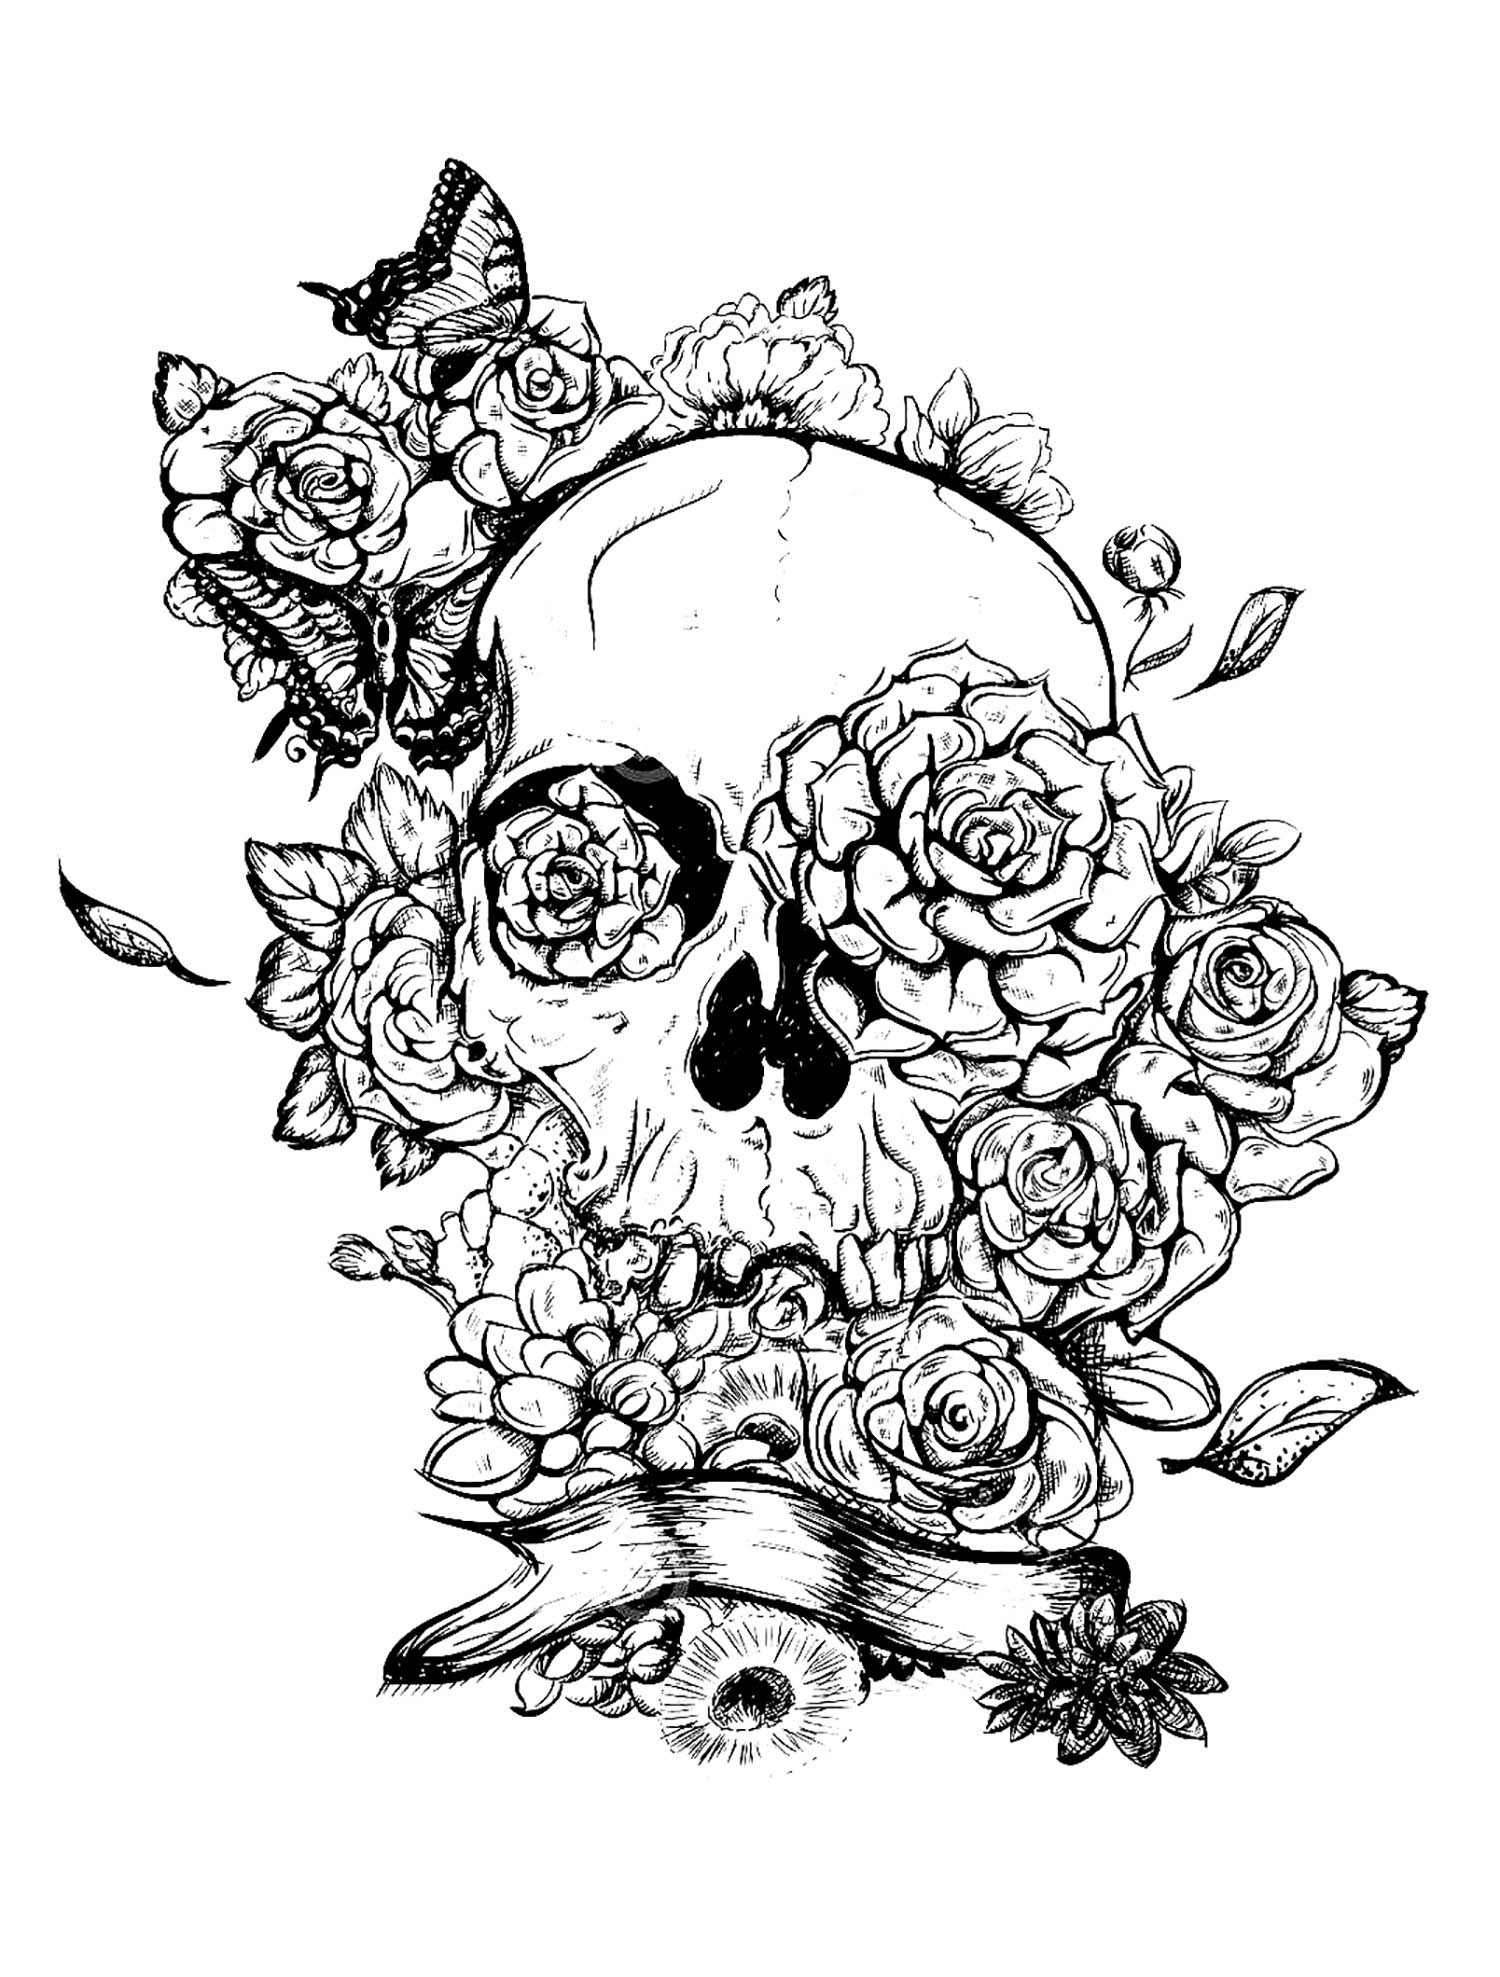 Coloring adult skull and roses tattoo